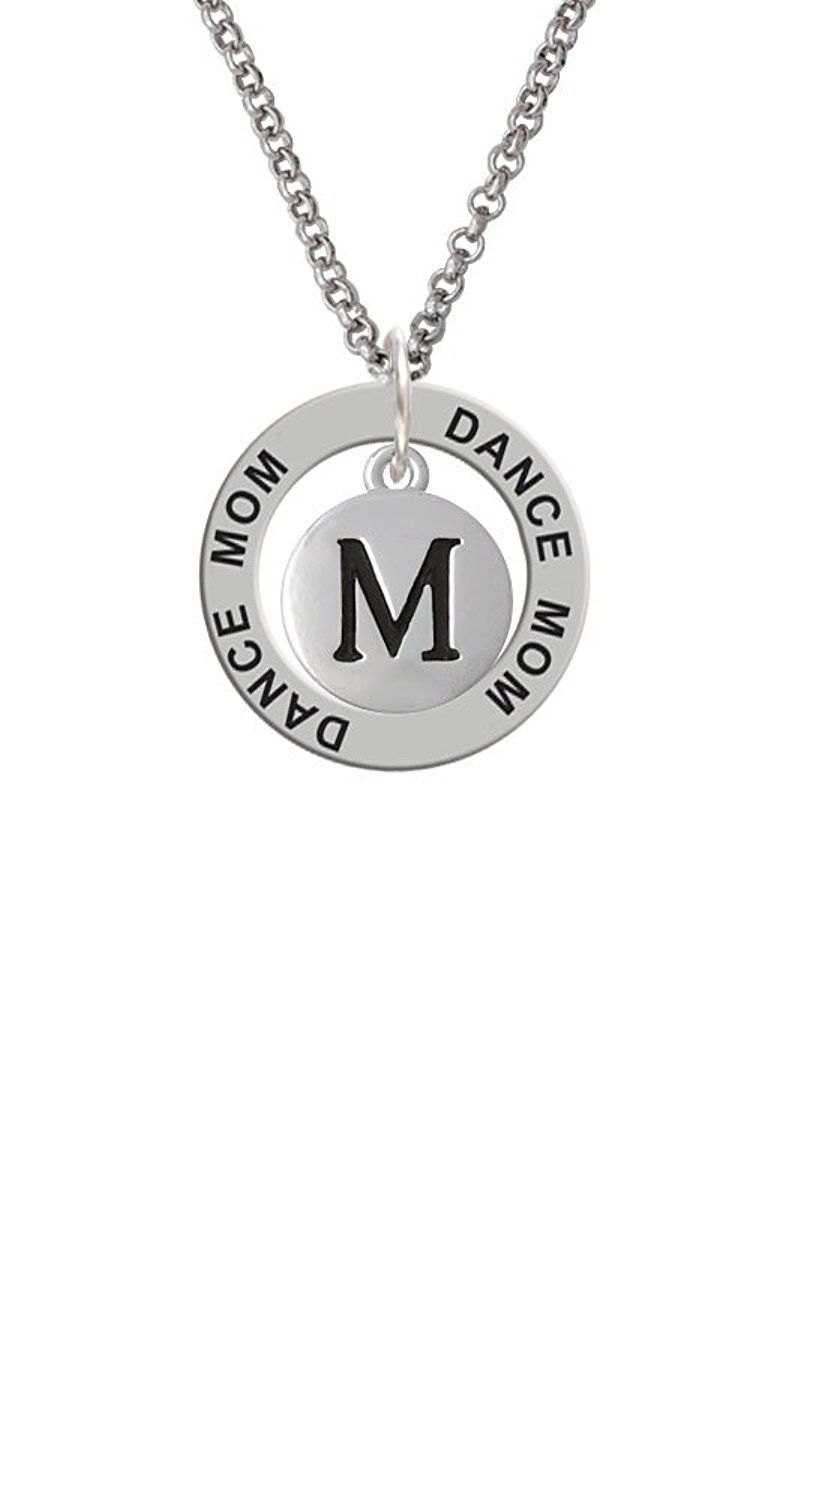 Bonyak Jewelry Sterling Silver Cross of Lorraine Pendant 1 X 5//8 inches with 18 inch Sterling Silver Curb Chain